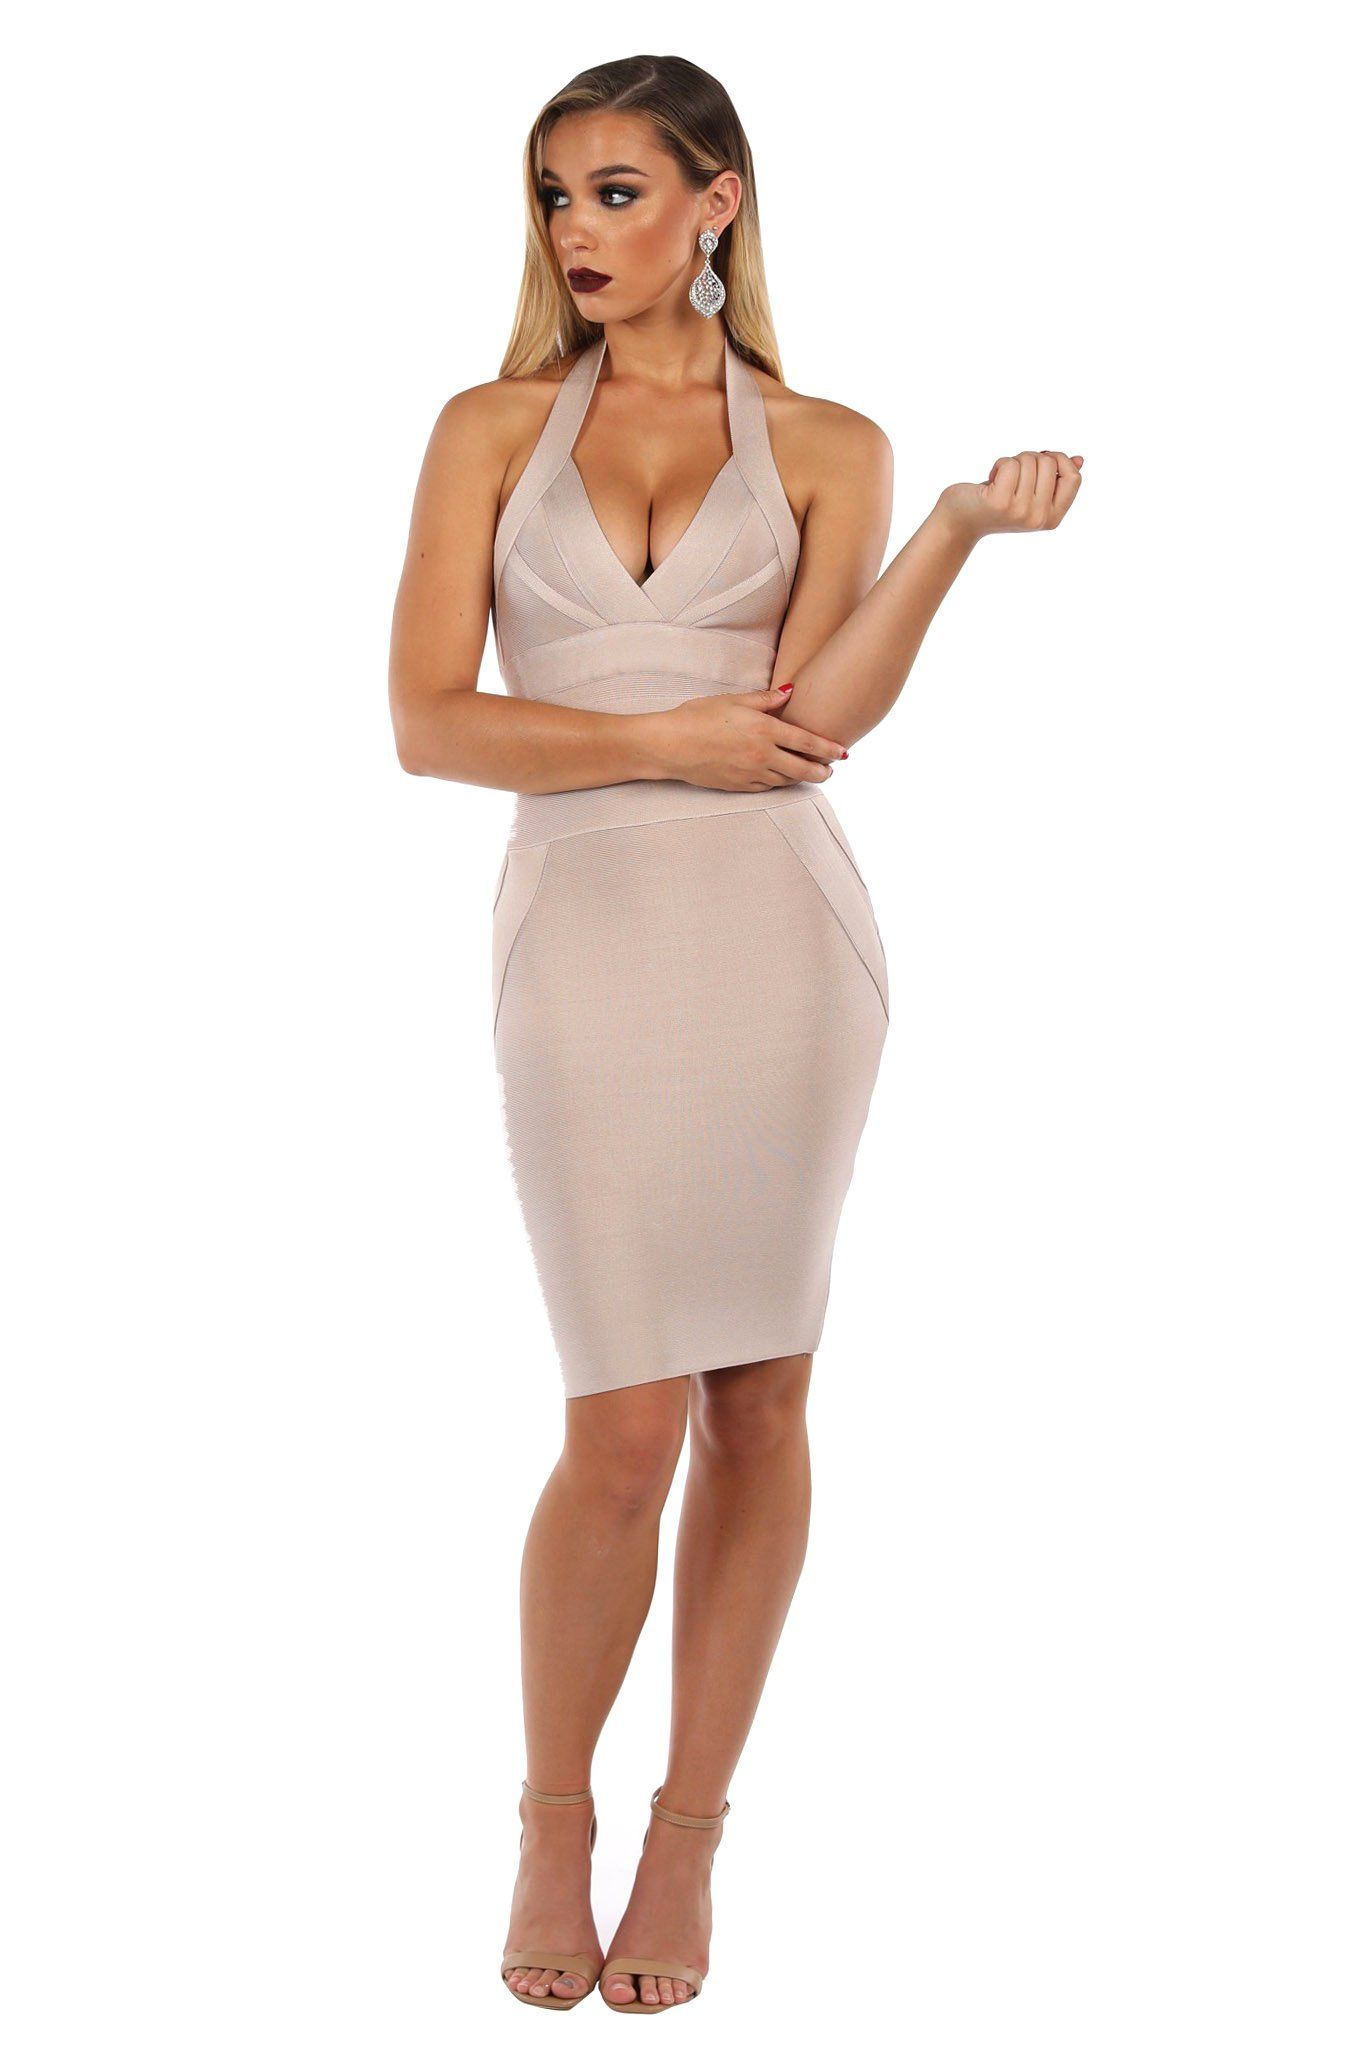 Nude colored tight fitting bandage dress in knee length with plunging halter neckline and open back design